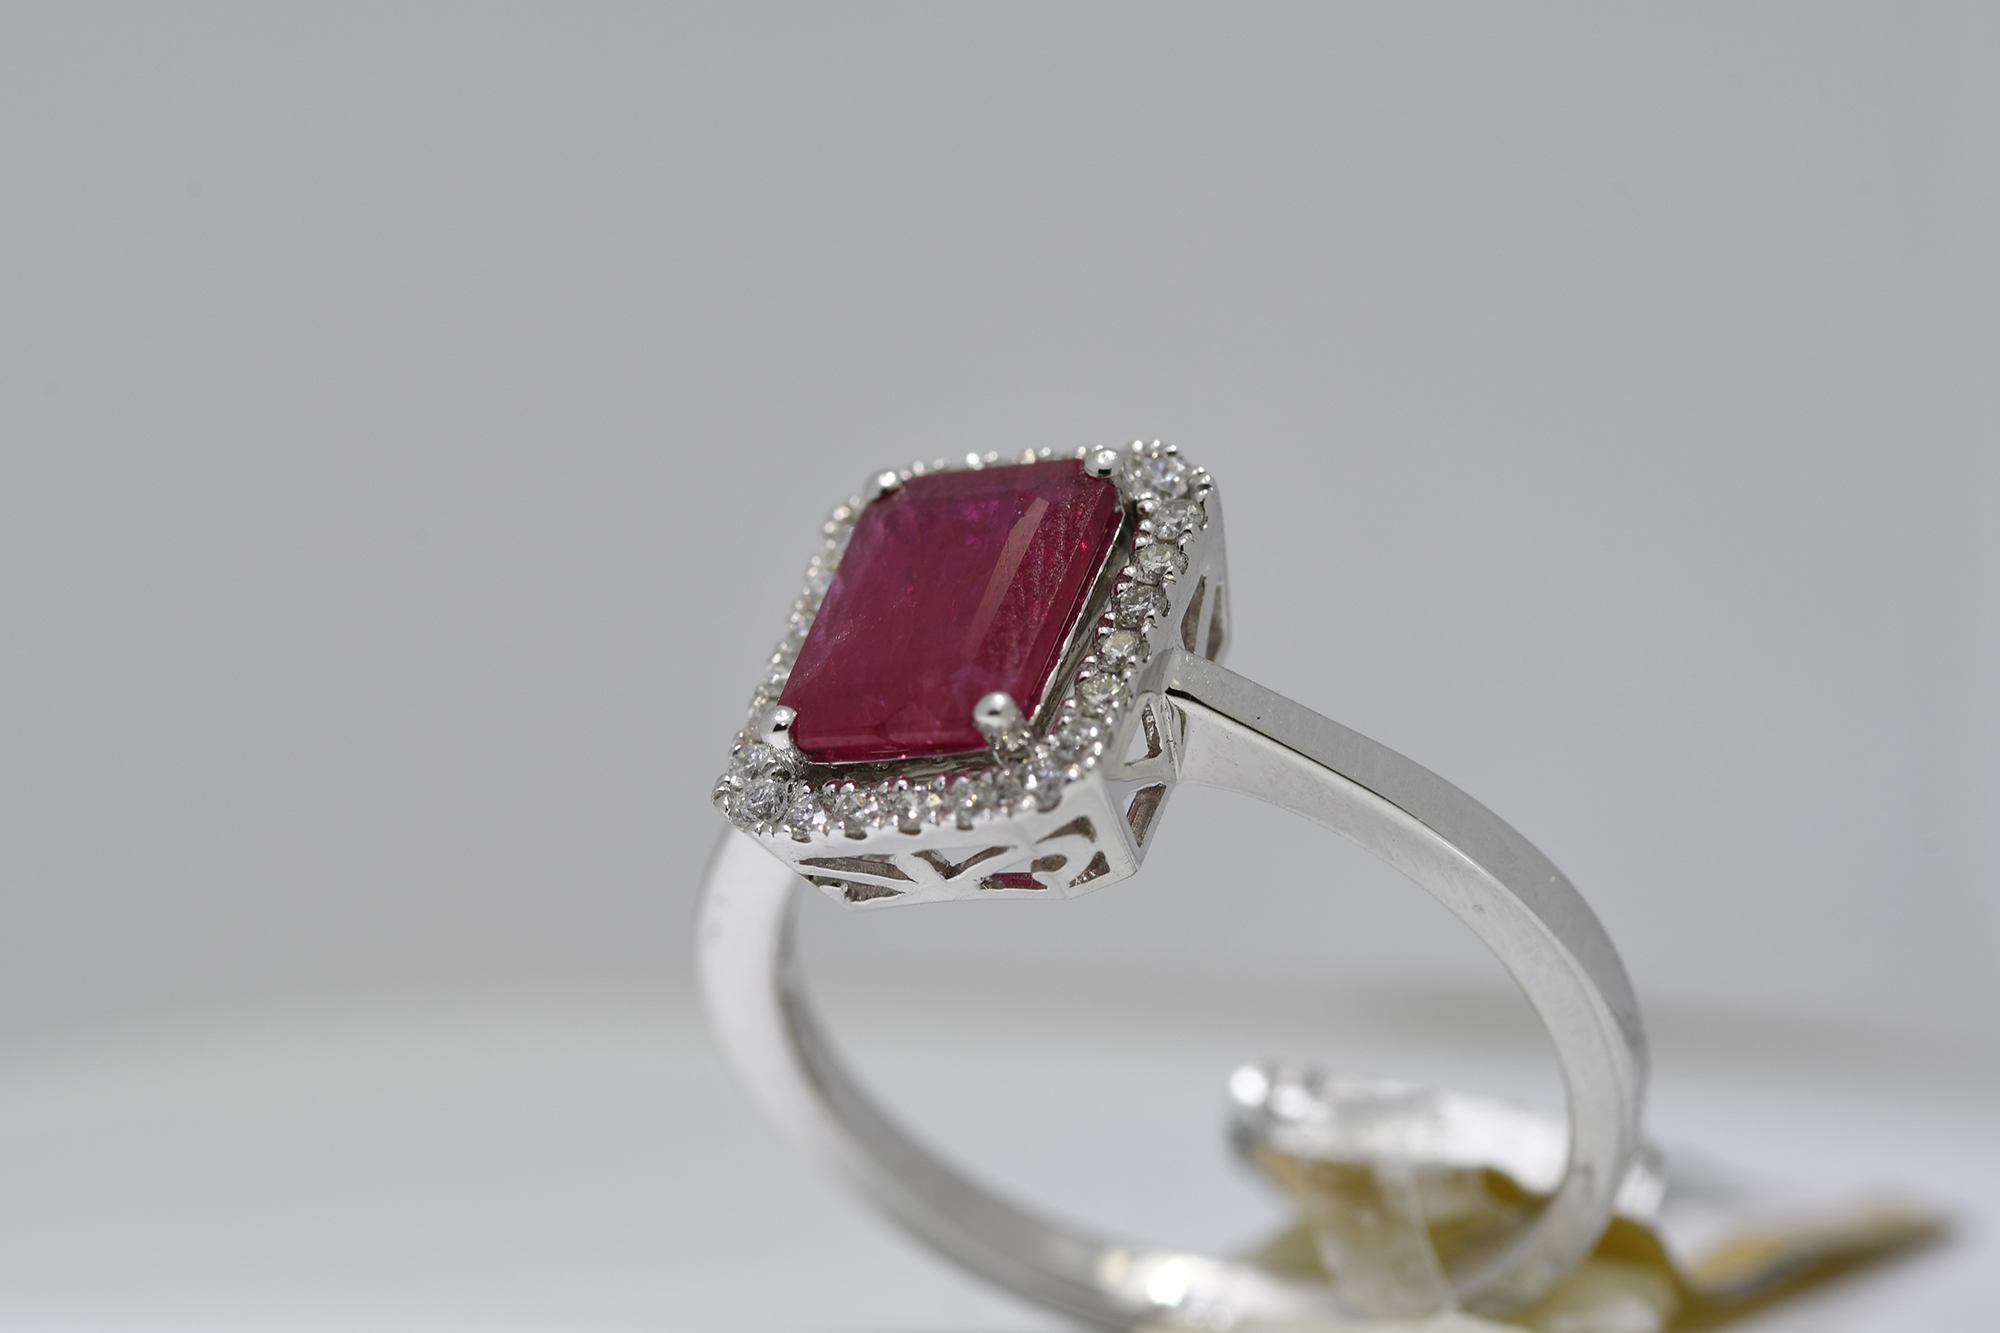 Ruby & Diamond Ring - Image 3 of 3